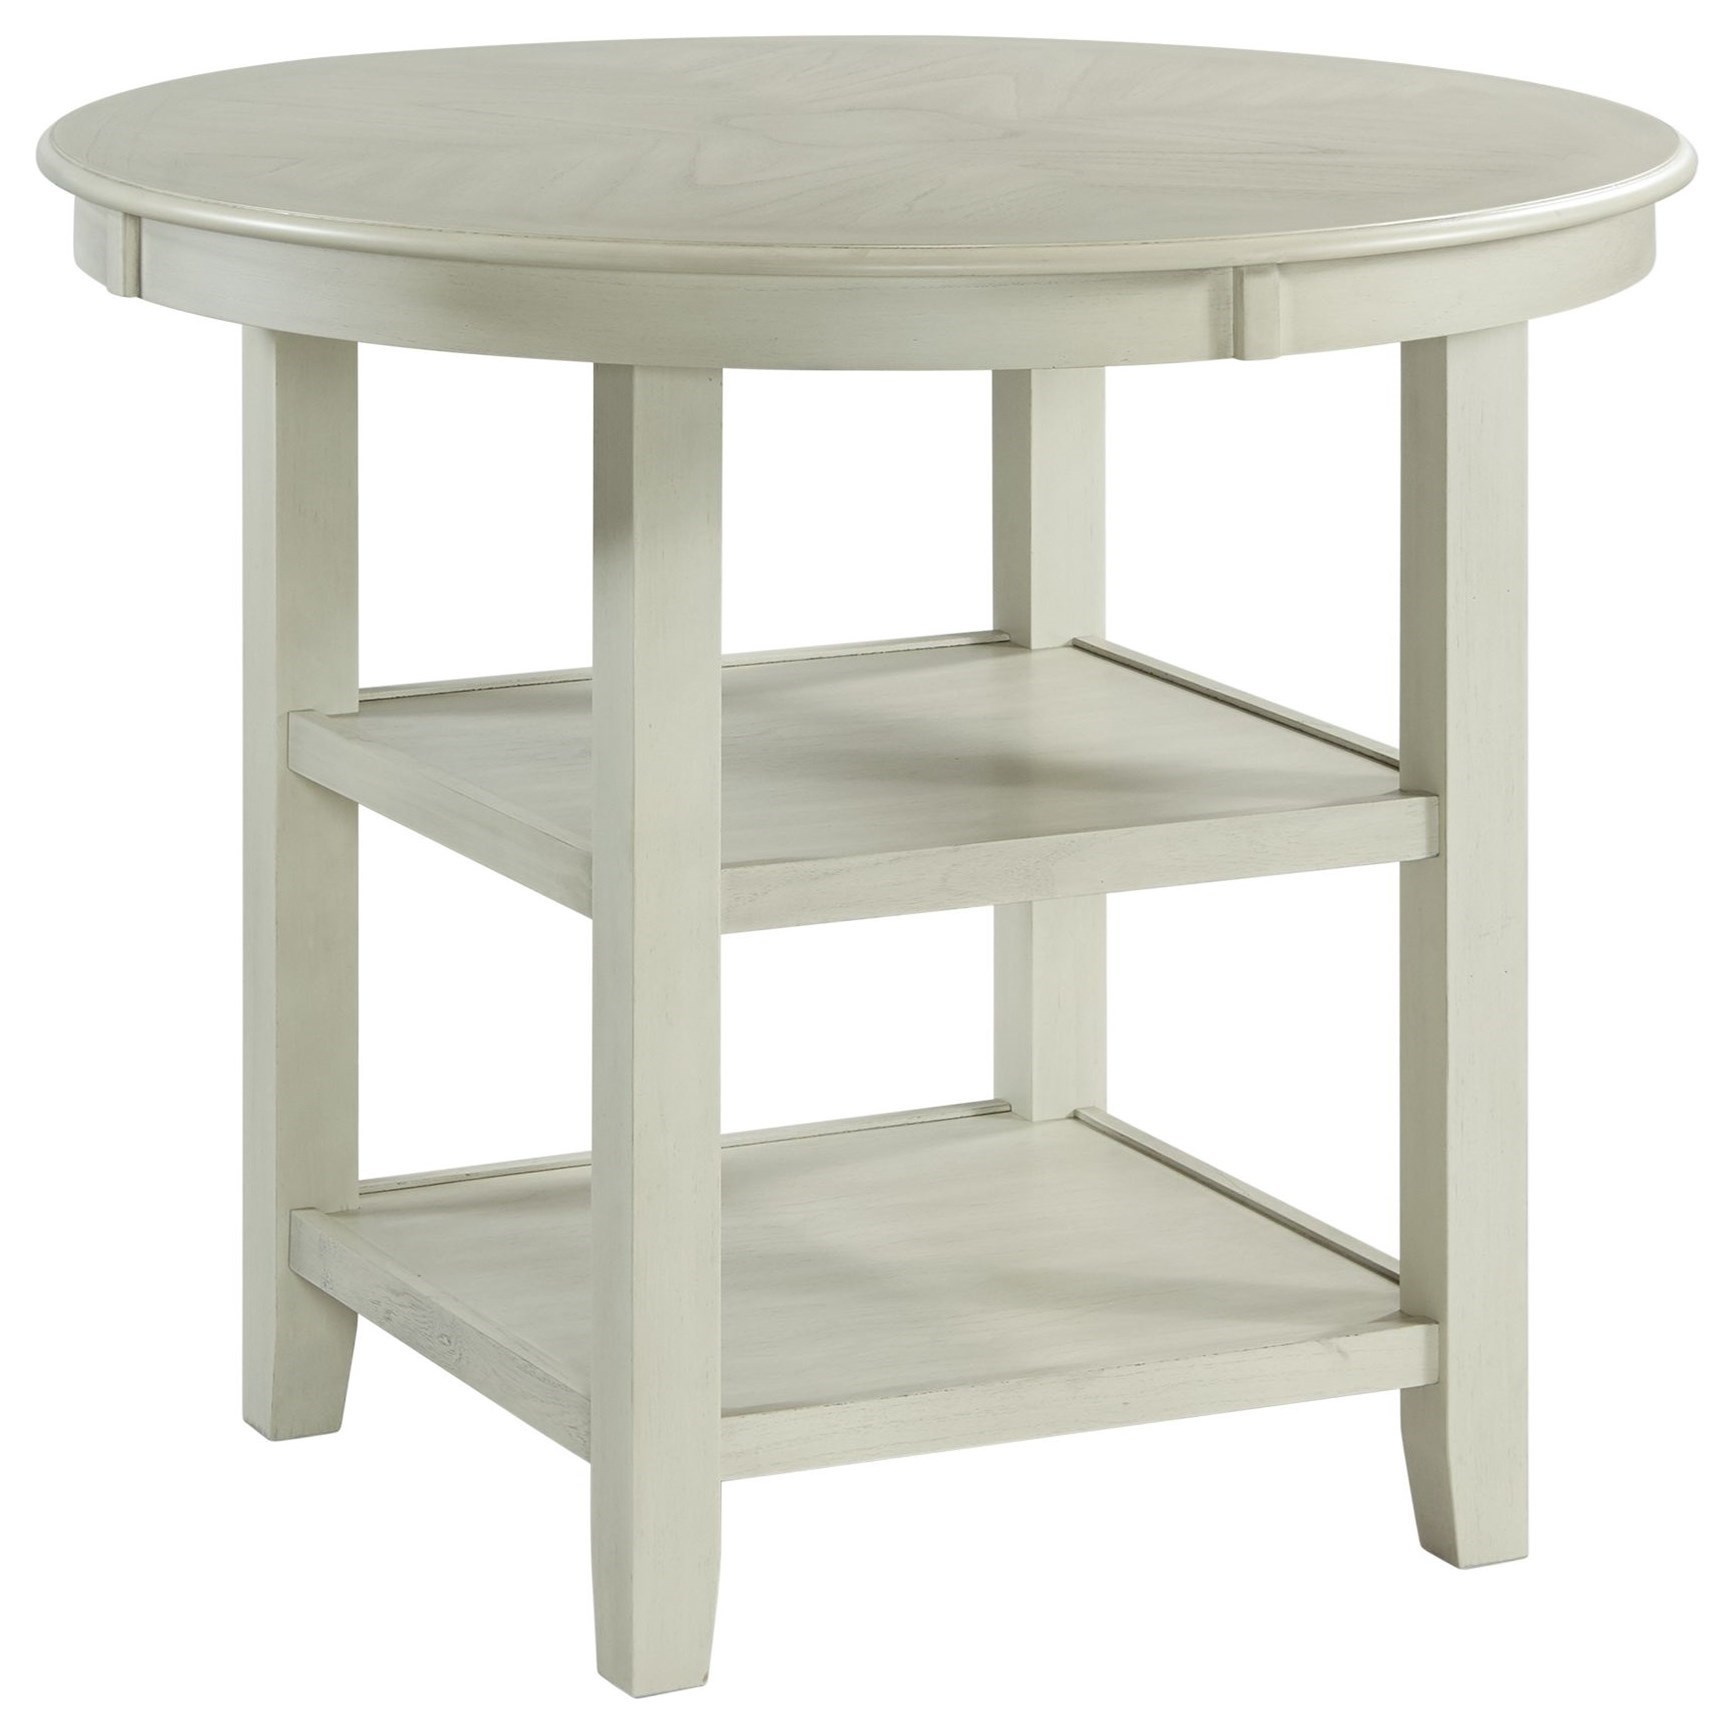 Amherst Counter Height Dining Table by Elements International at Smart Buy Furniture